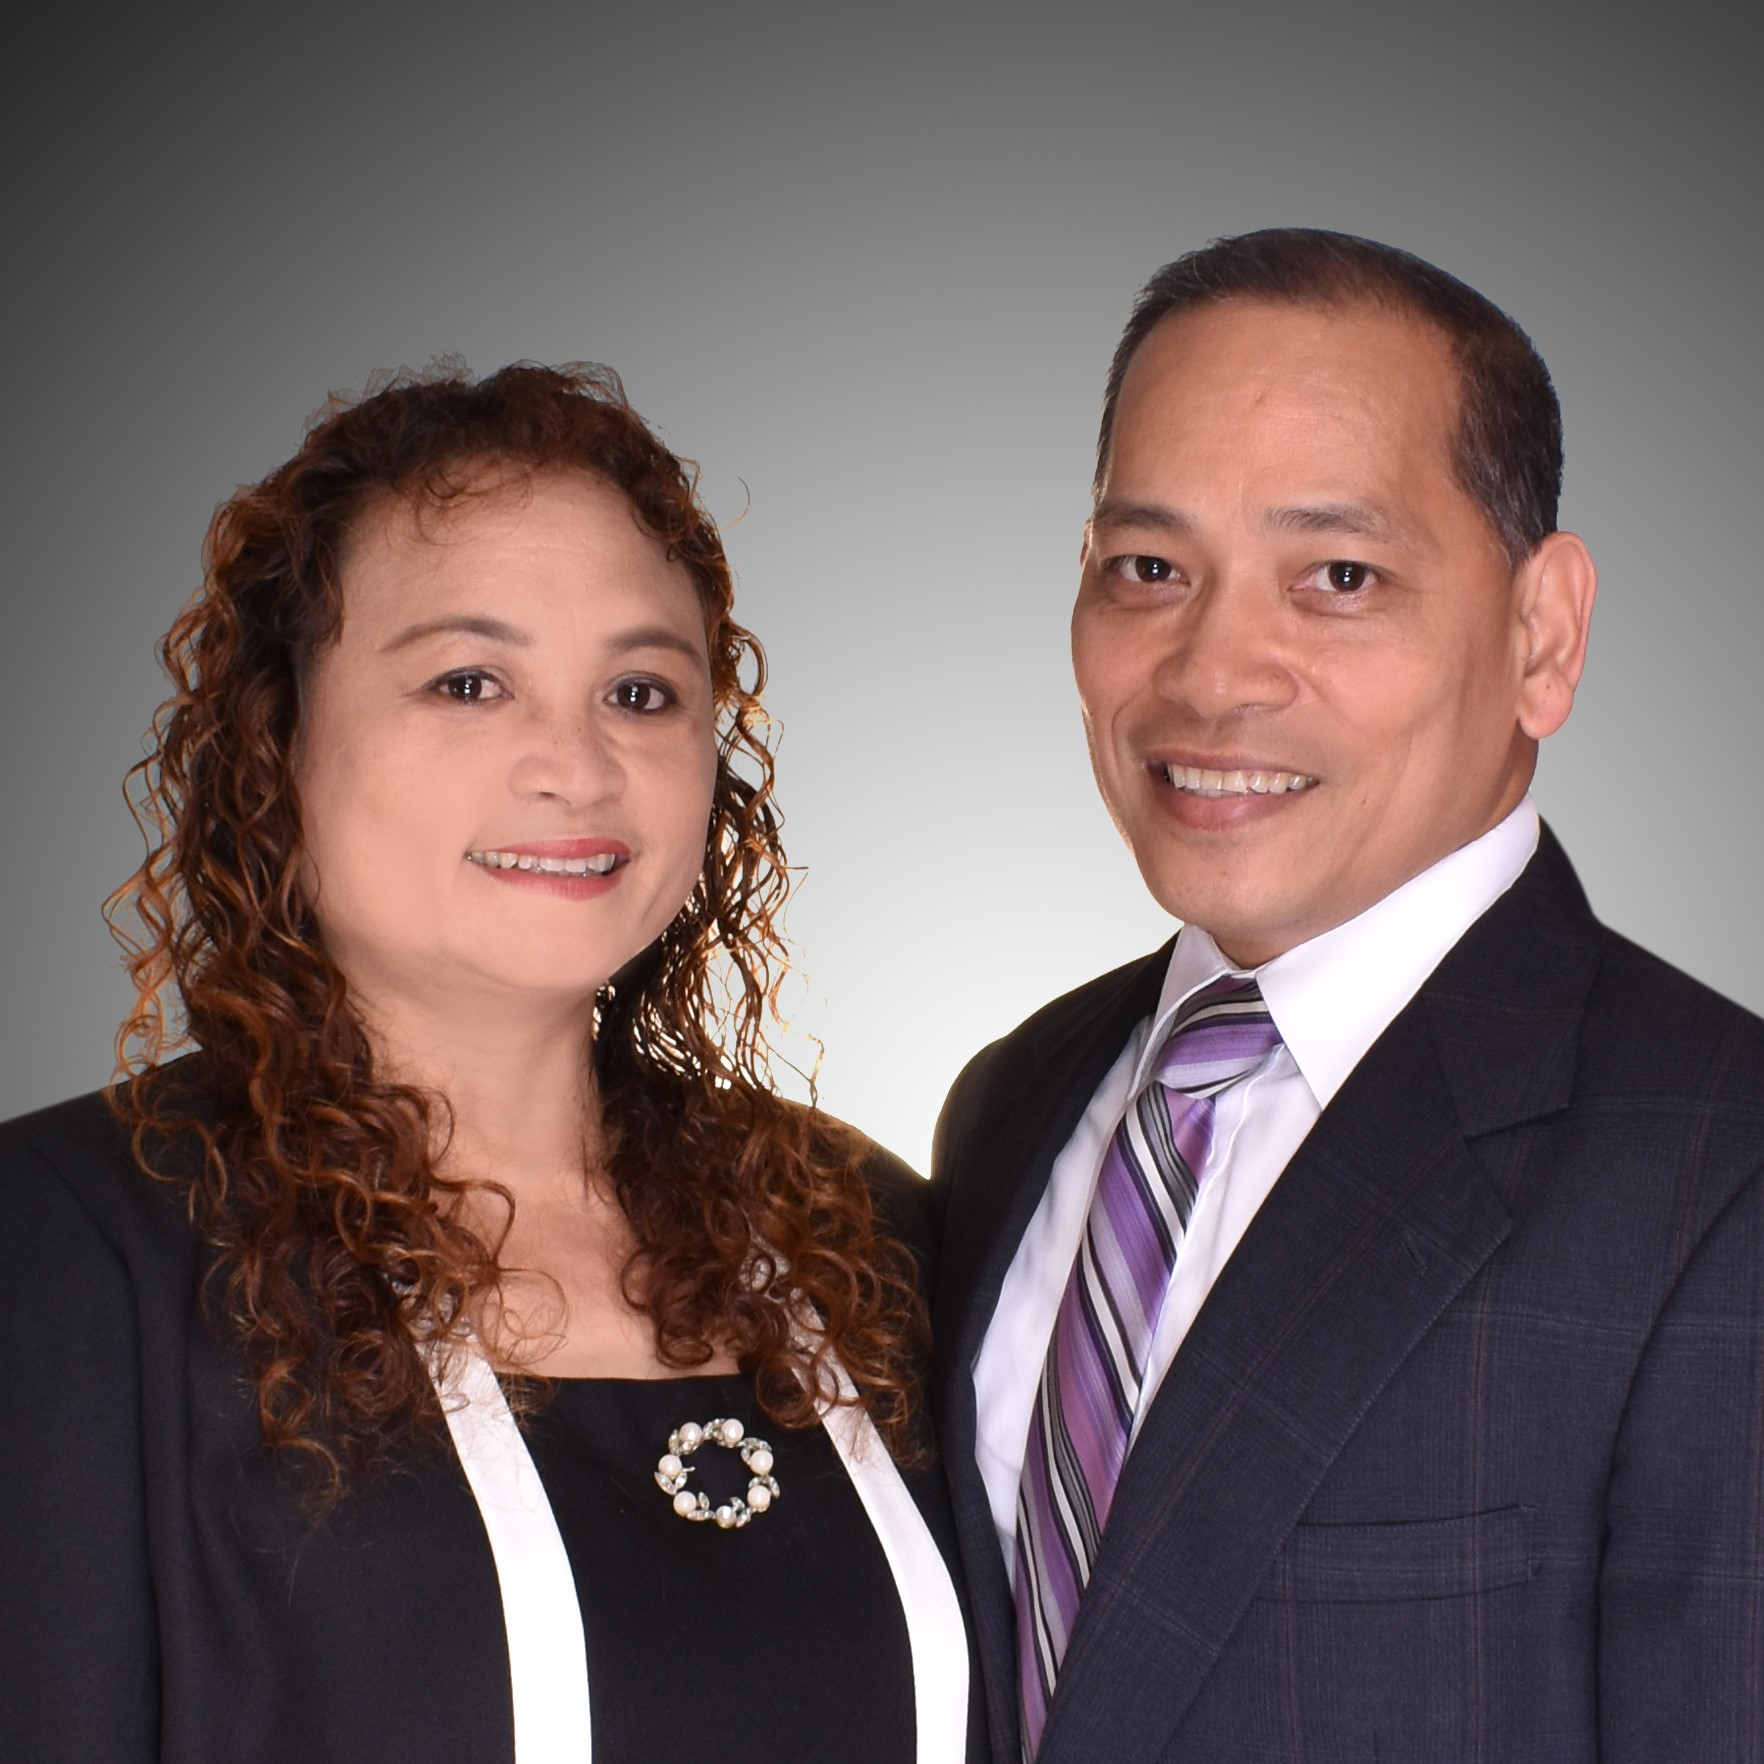 Leah and Rogelio D. Montemayor Jr.